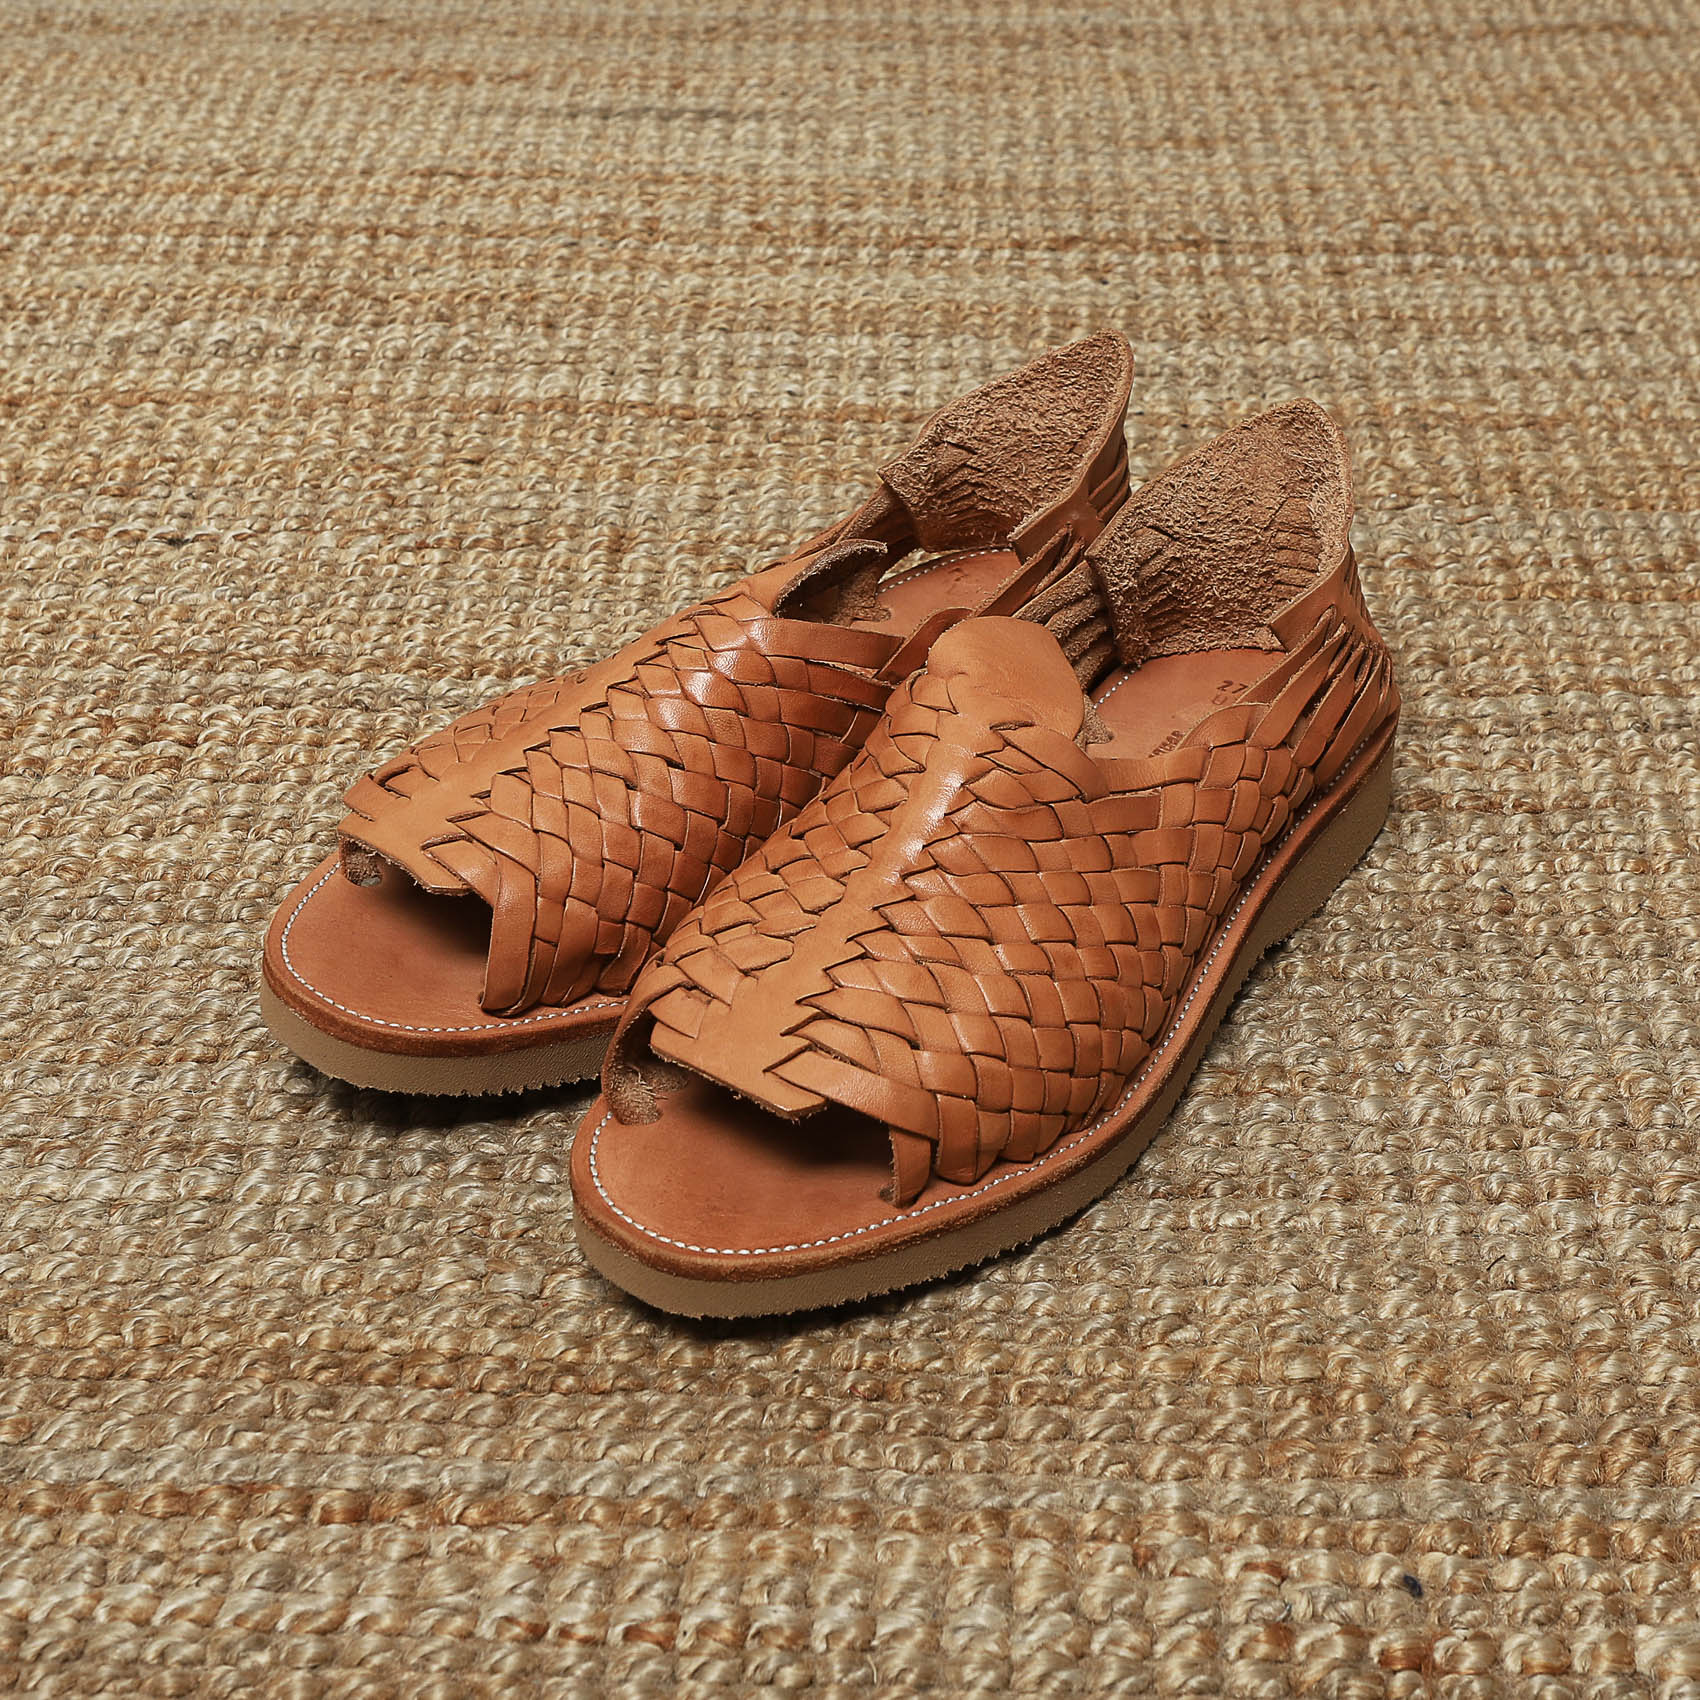 YUKETEN CRUS WOVEN LEATHER SANDALS - BROWN